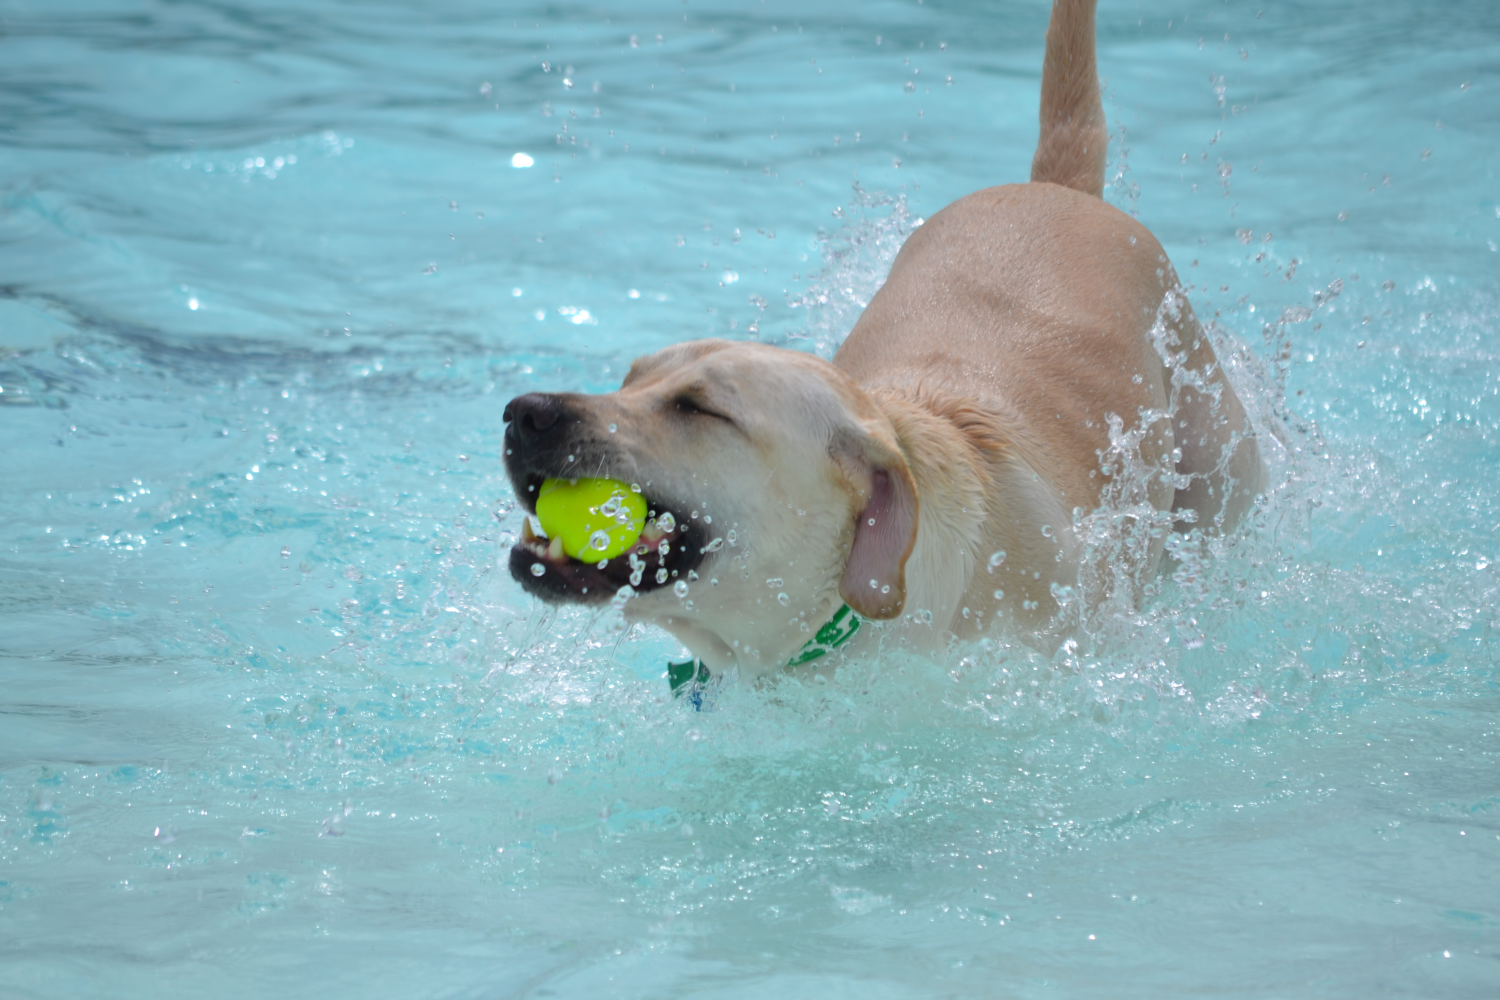 Lab swimming in a pool